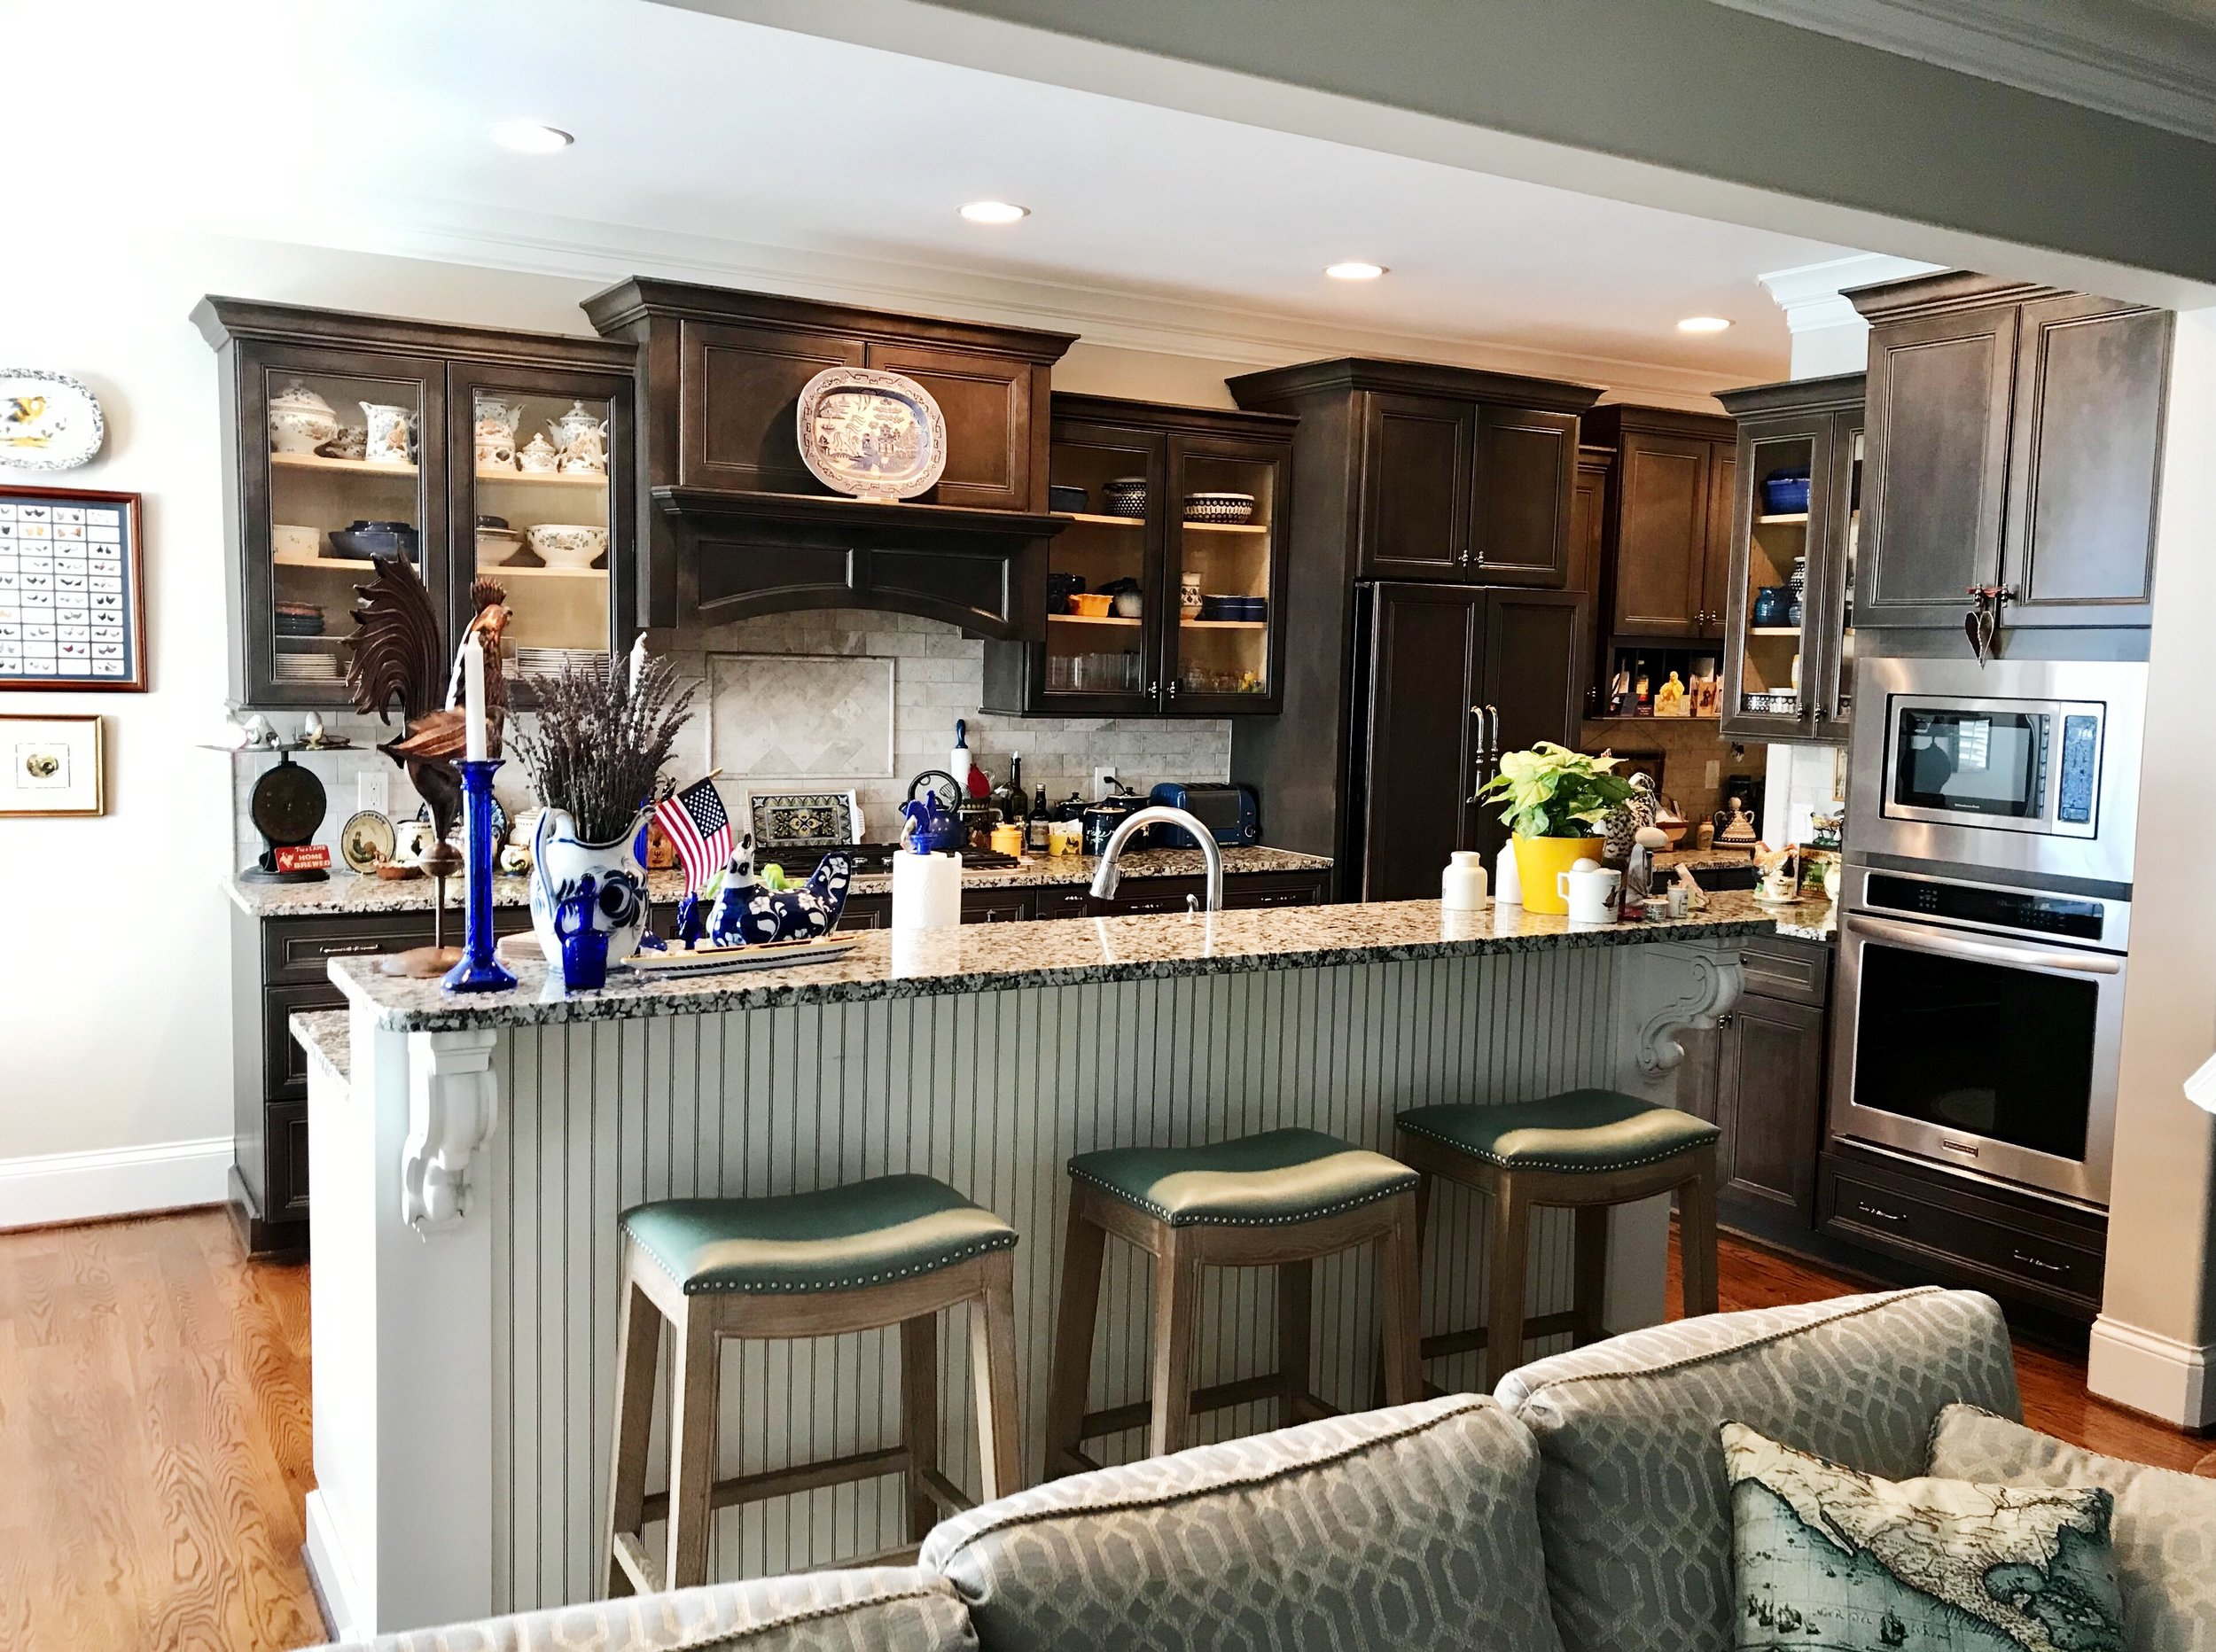 Susie had the wonderful idea of replacing the panels of several of her upper cabinets with glass fronts to lighten up her kitchen.